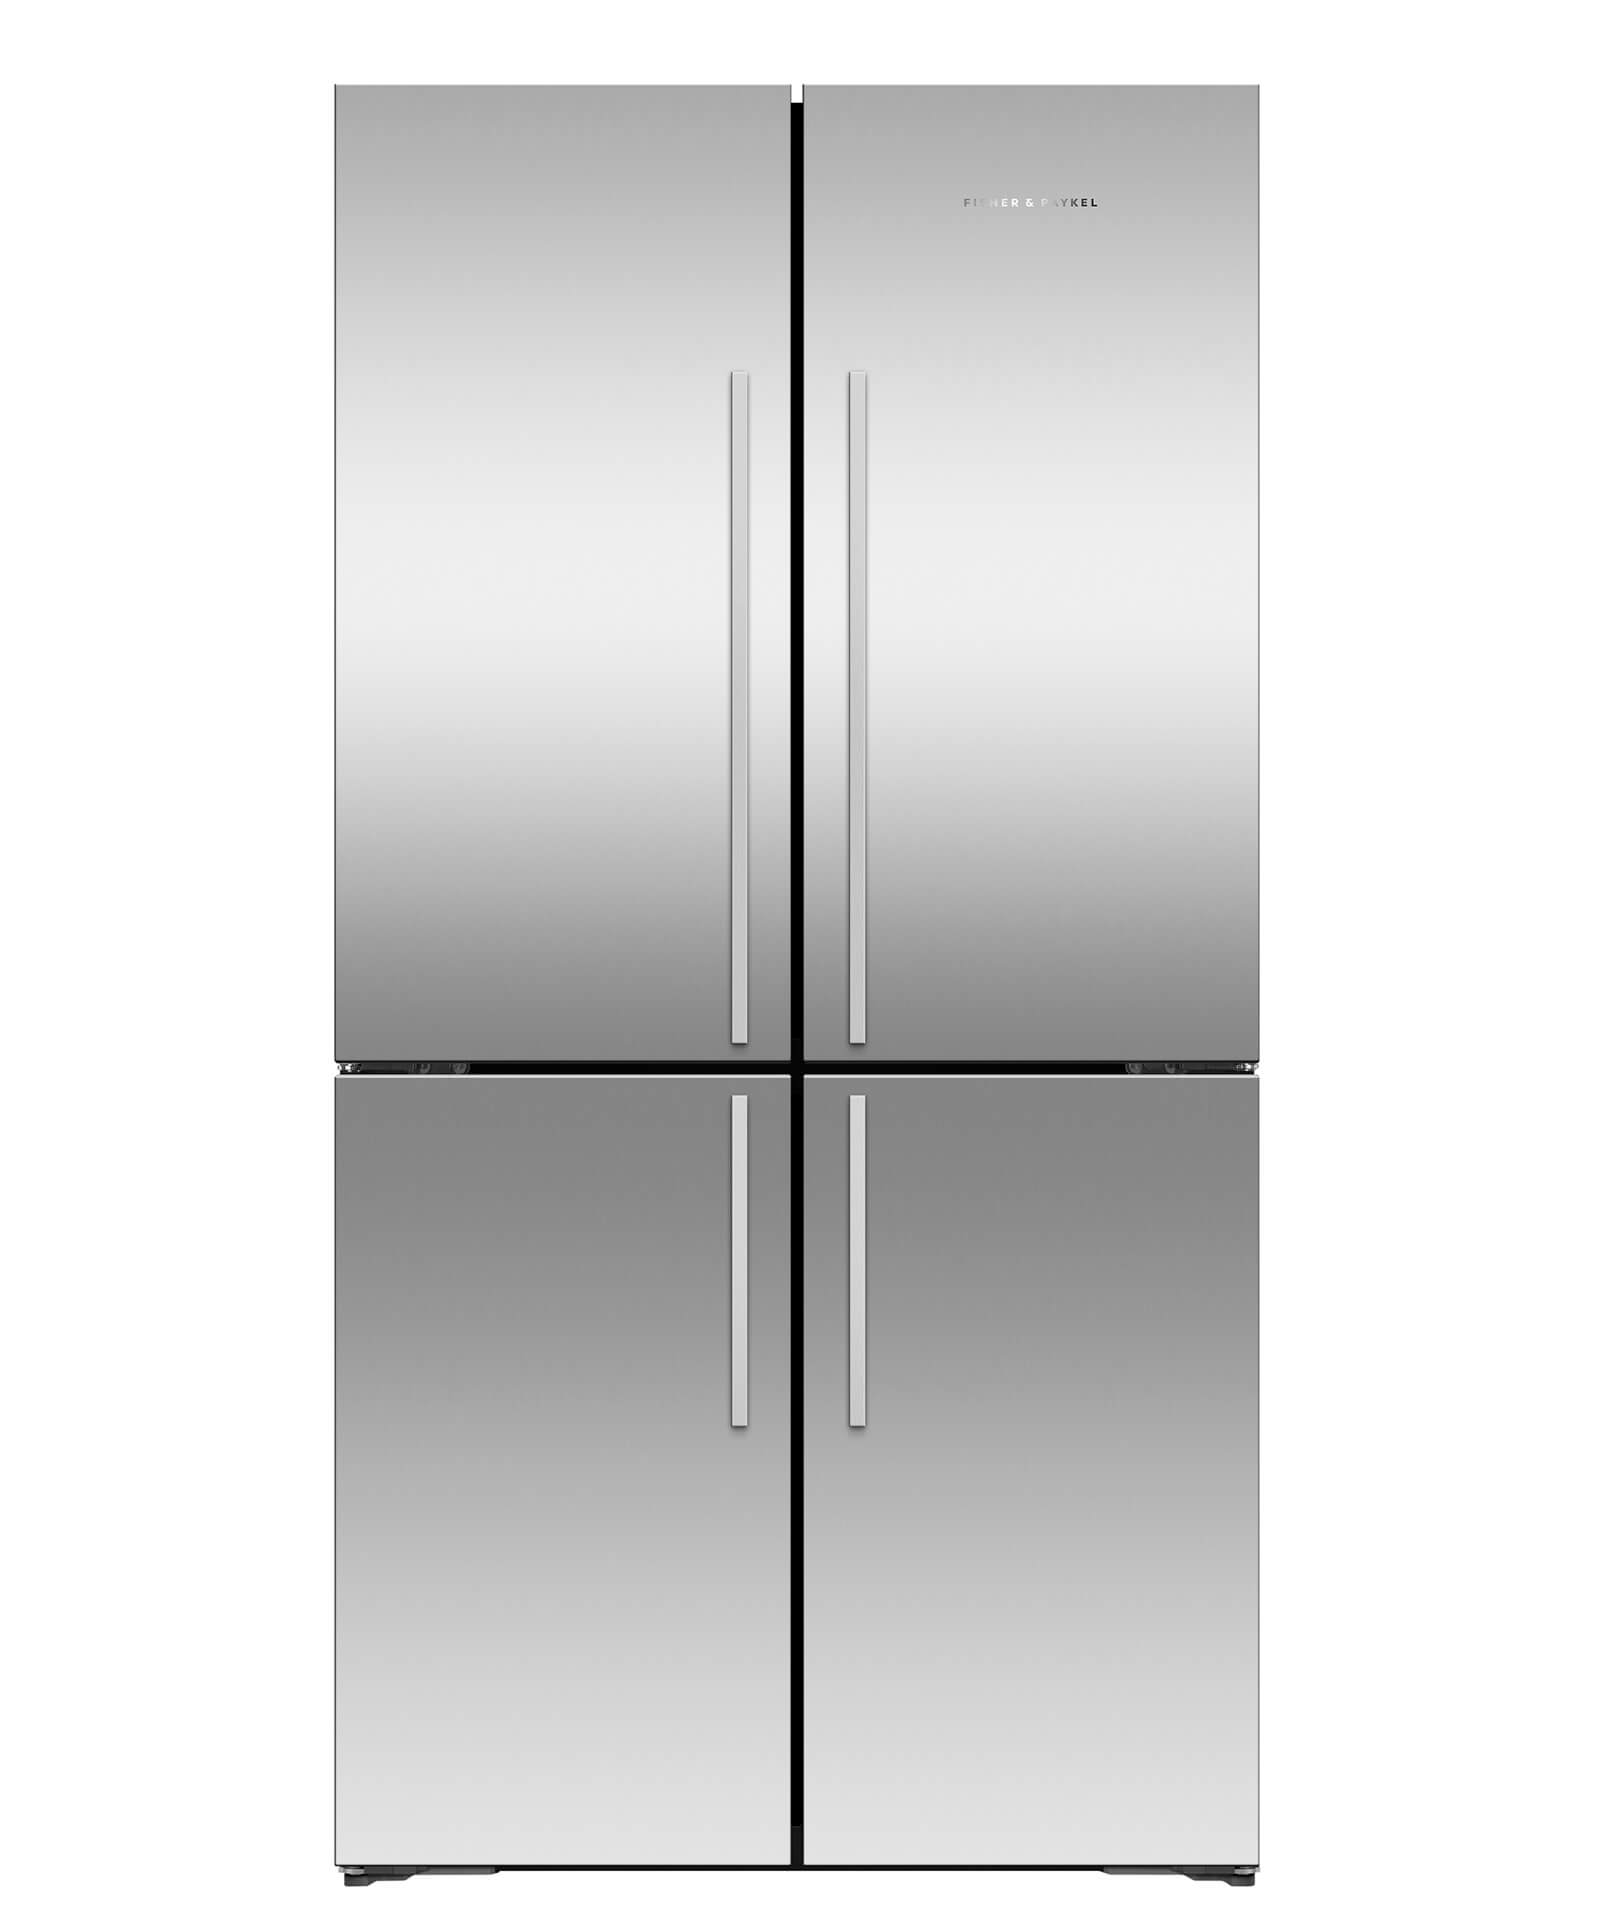 Fridge Freezer Rf605qdvx1 Quad Door Fridge Freezer 905mm 605l Fisher Paykel Au